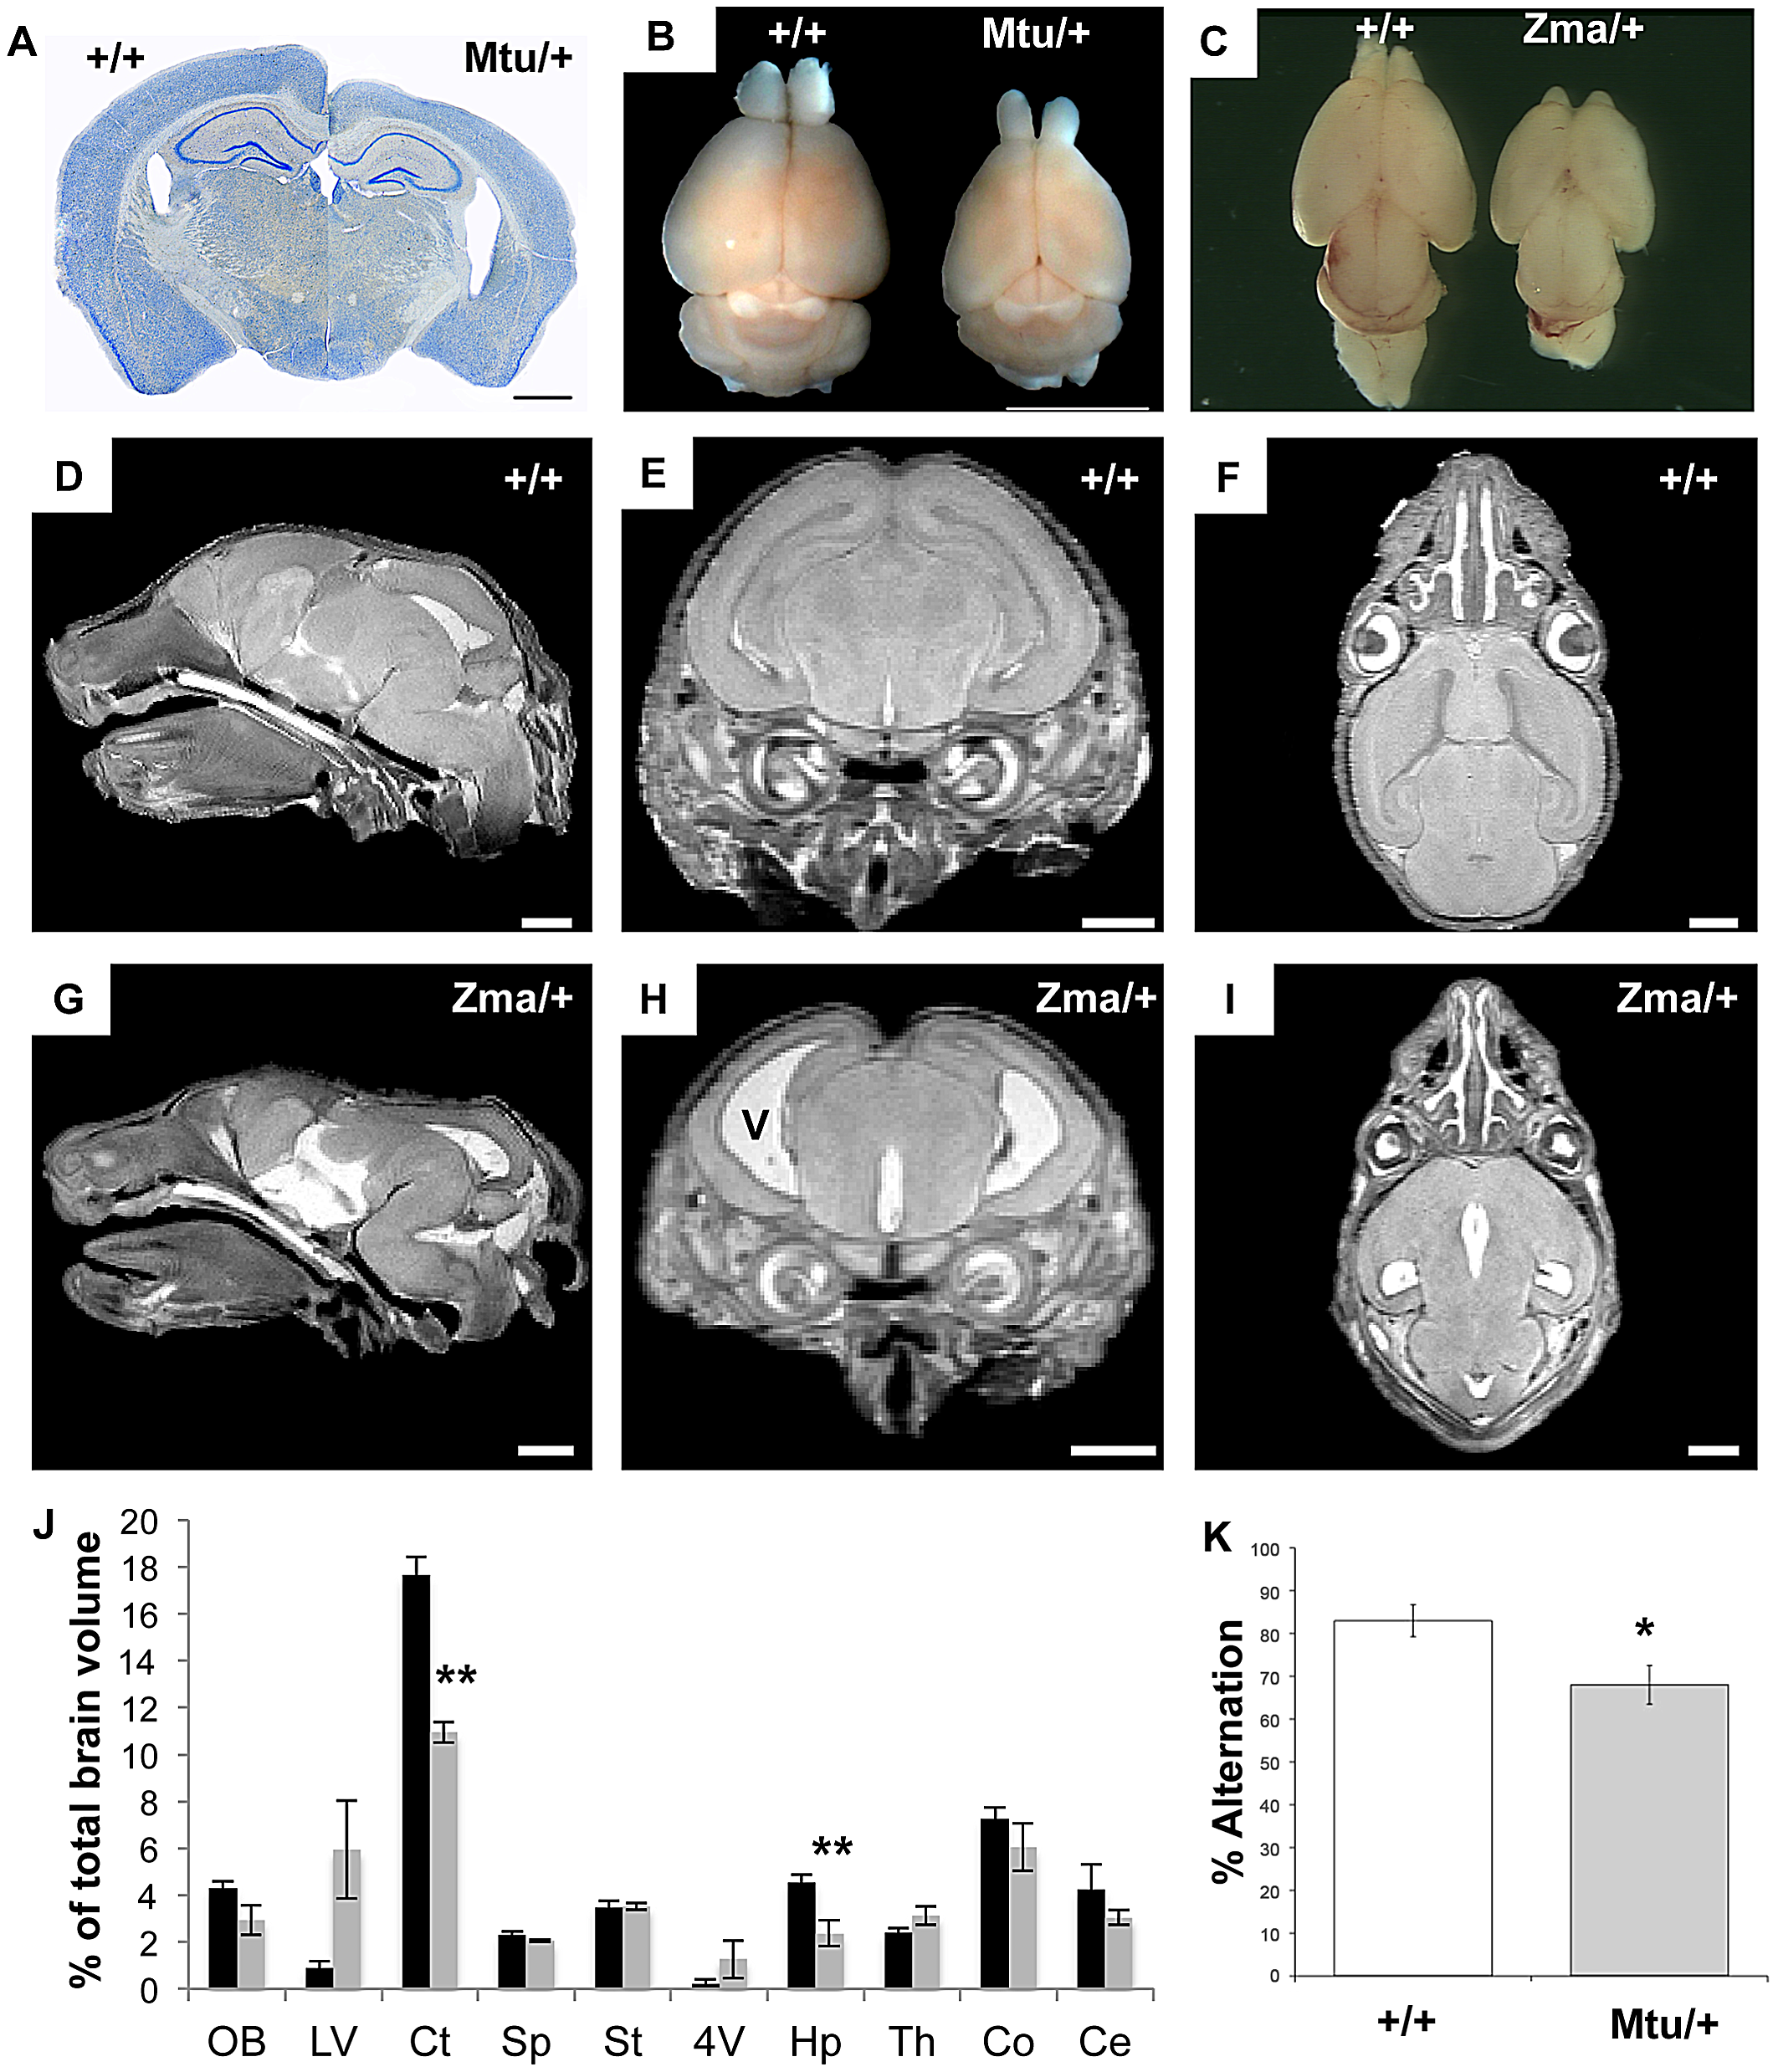 Brain size and behavioral abnormalities in <i>Rps7</i> mutants.